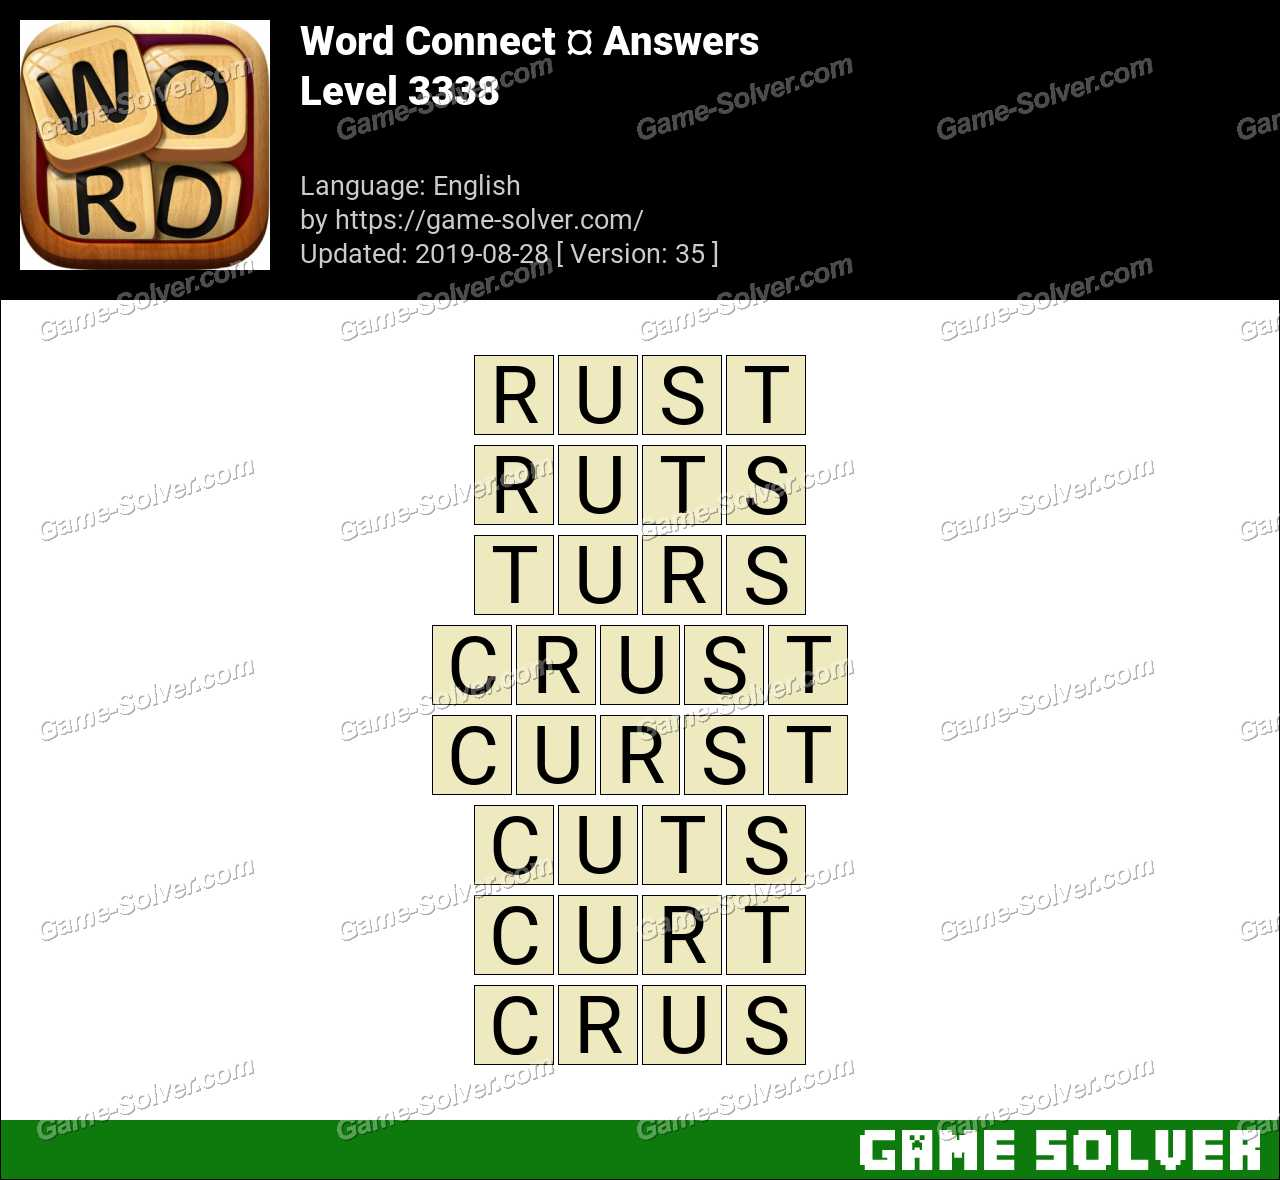 Word Connect Level 3338 Answers